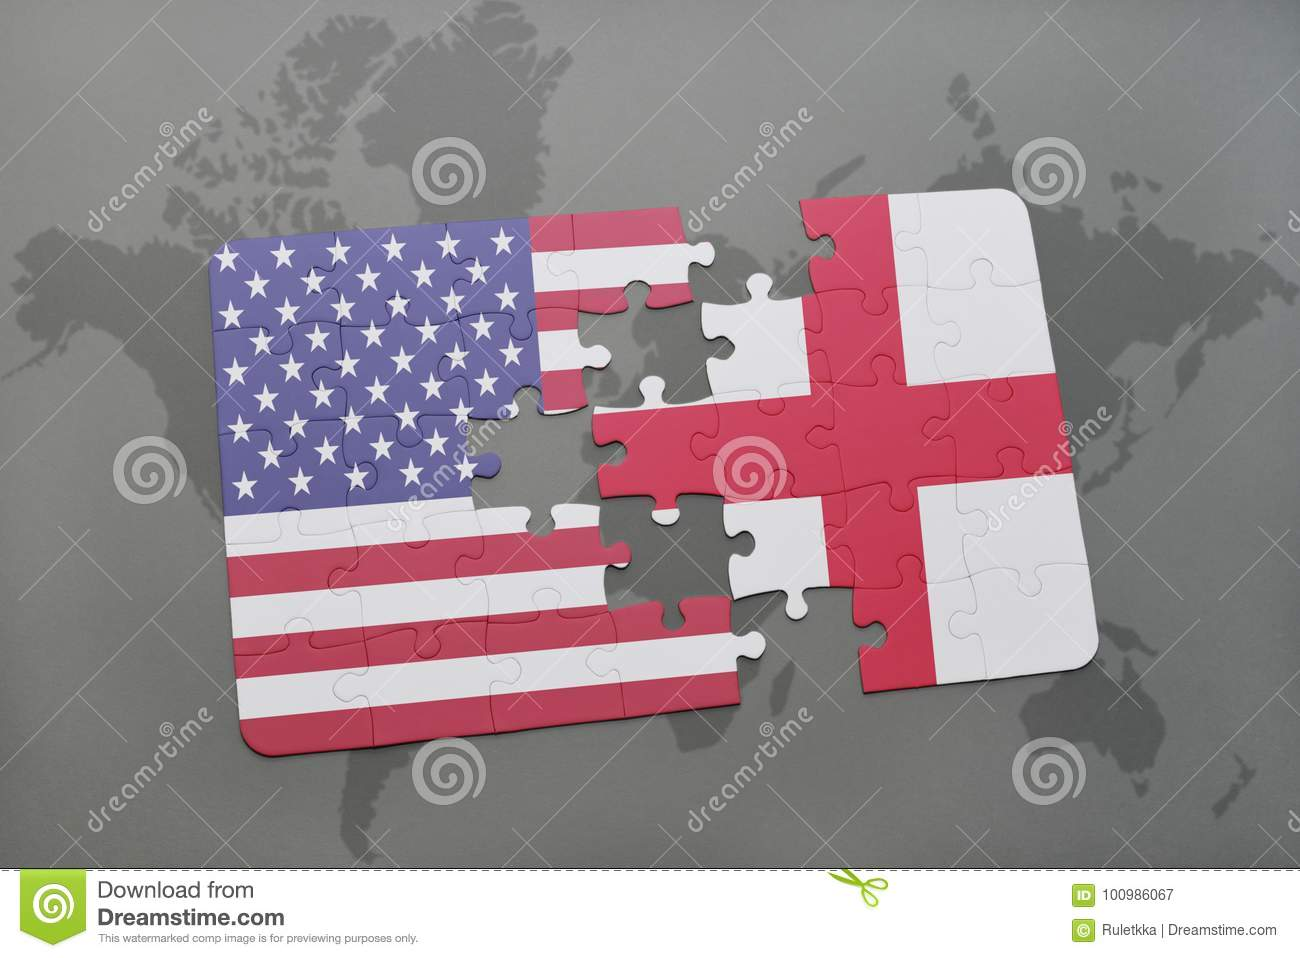 Puzzle with the national flag of united states of america and download puzzle with the national flag of united states of america and england on a world gumiabroncs Images